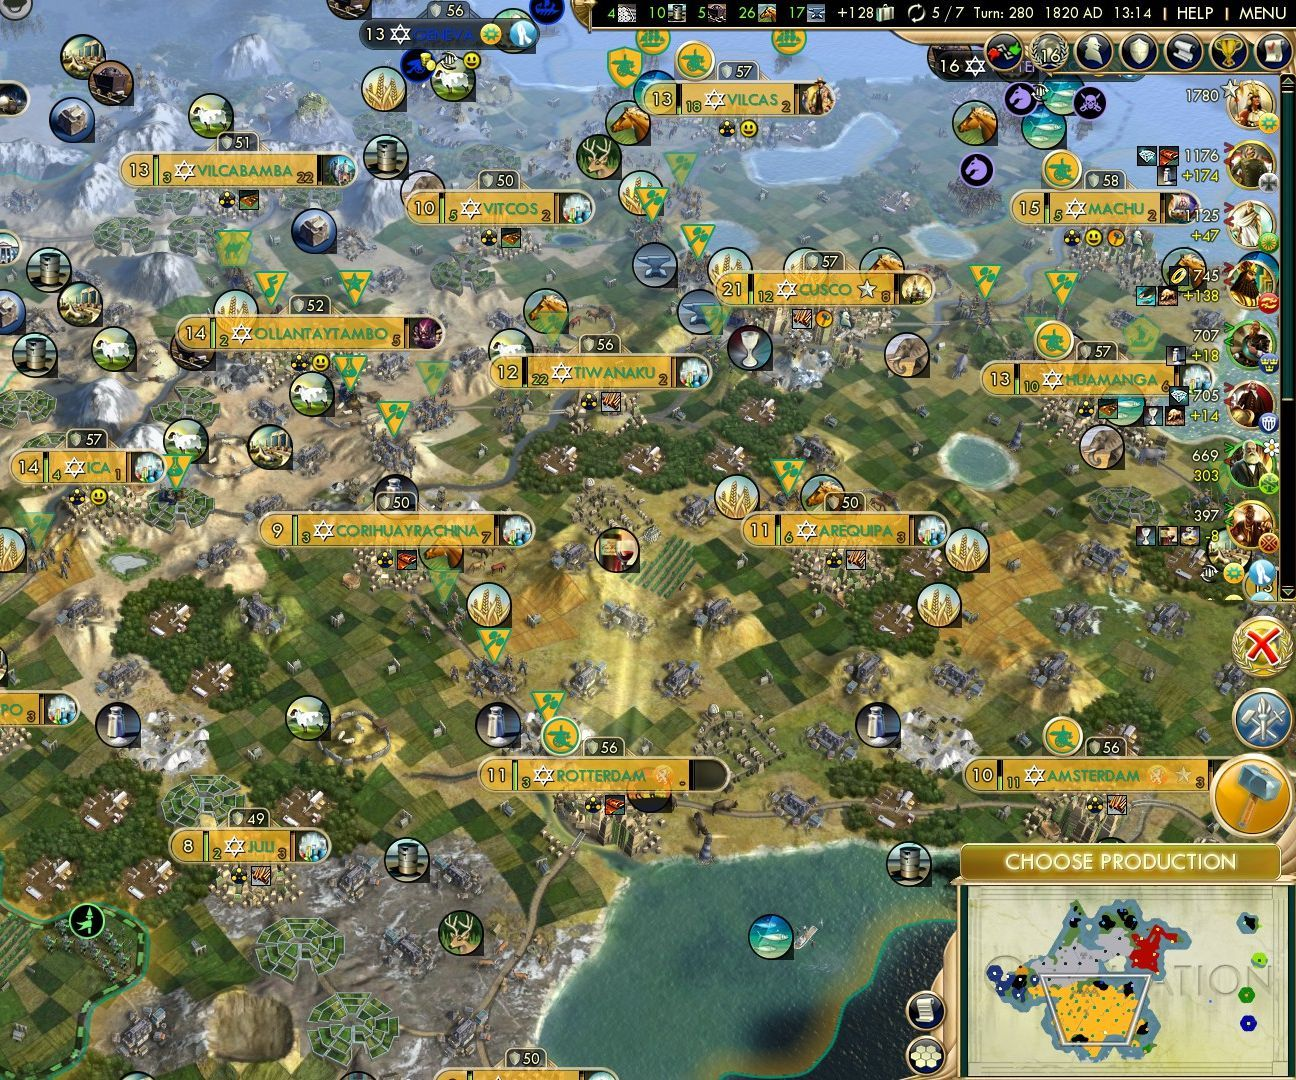 Sid Meier's Civilization V: How to Build a Wide Empire: 4 Steps